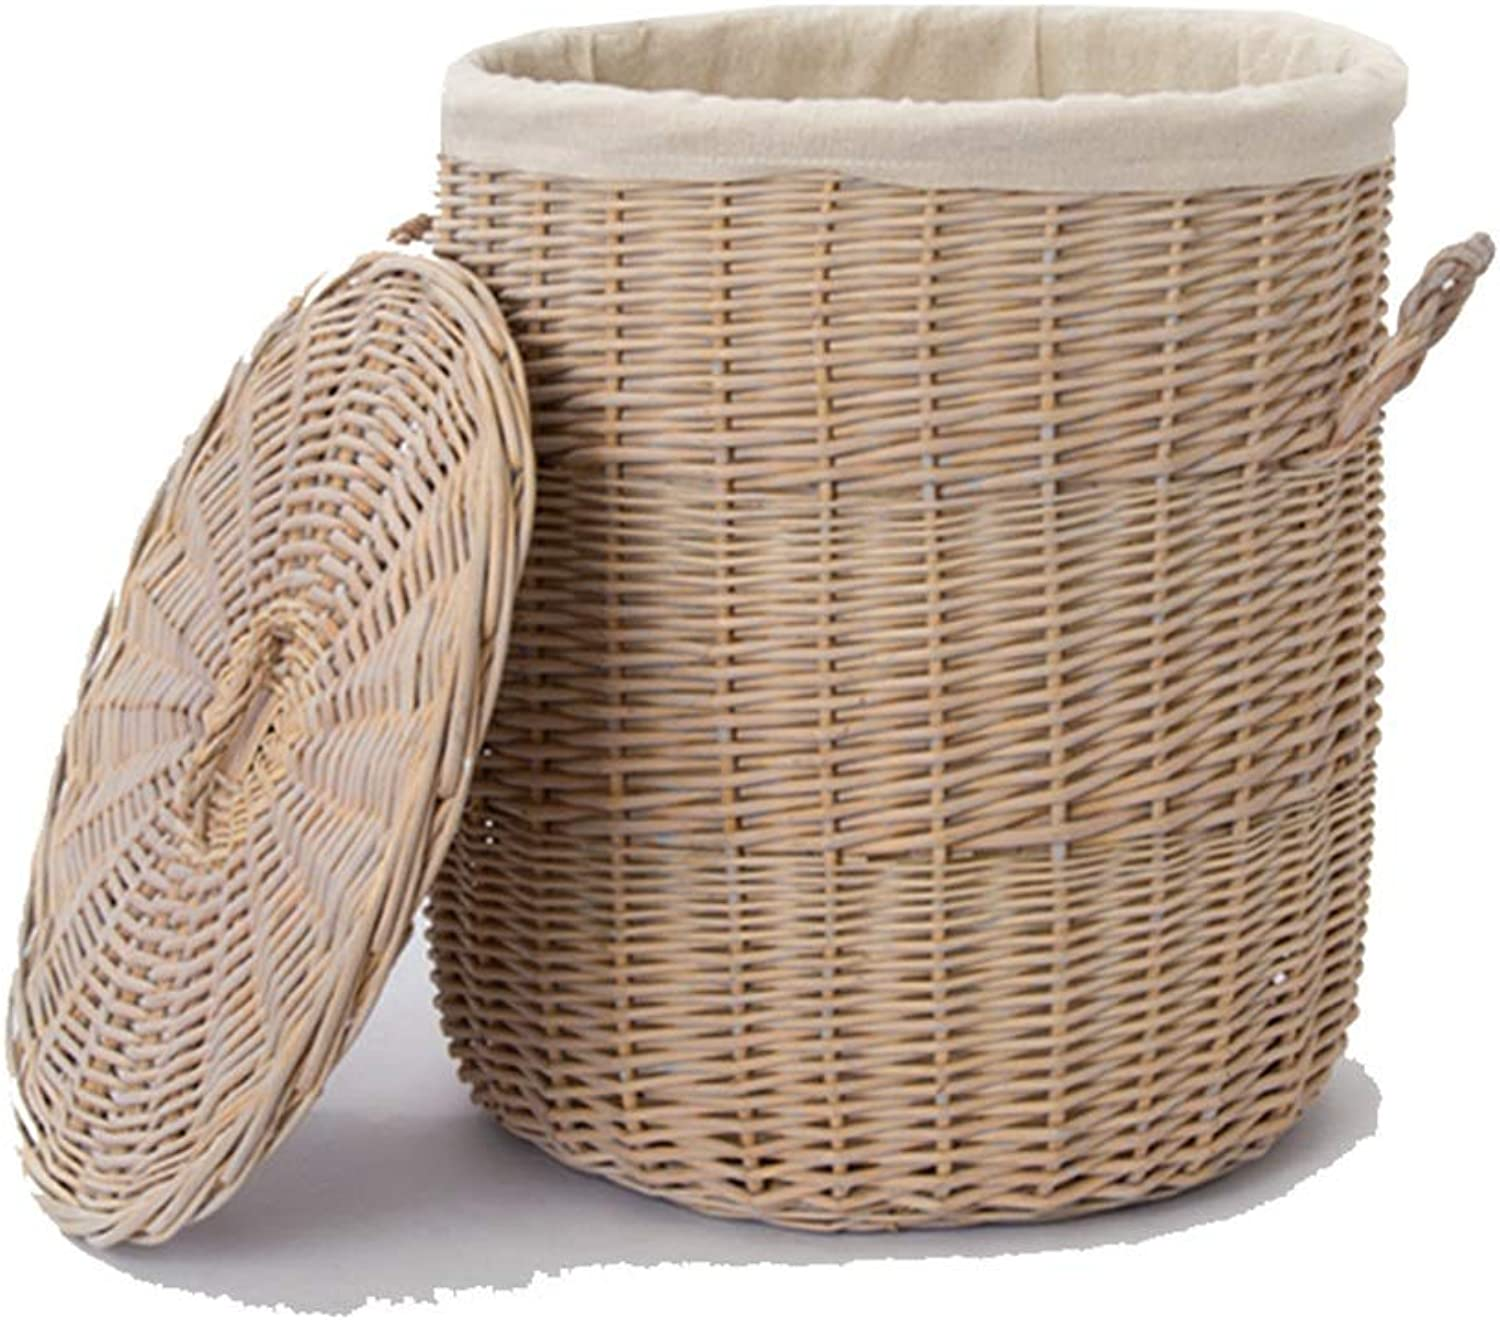 ZHANGQIANG Storage Basket Laundry Basket Laundry Hamper Multifunctional with Lid Hollow Household Storage Basket Wrought (color   Wood color, Size   37  42)